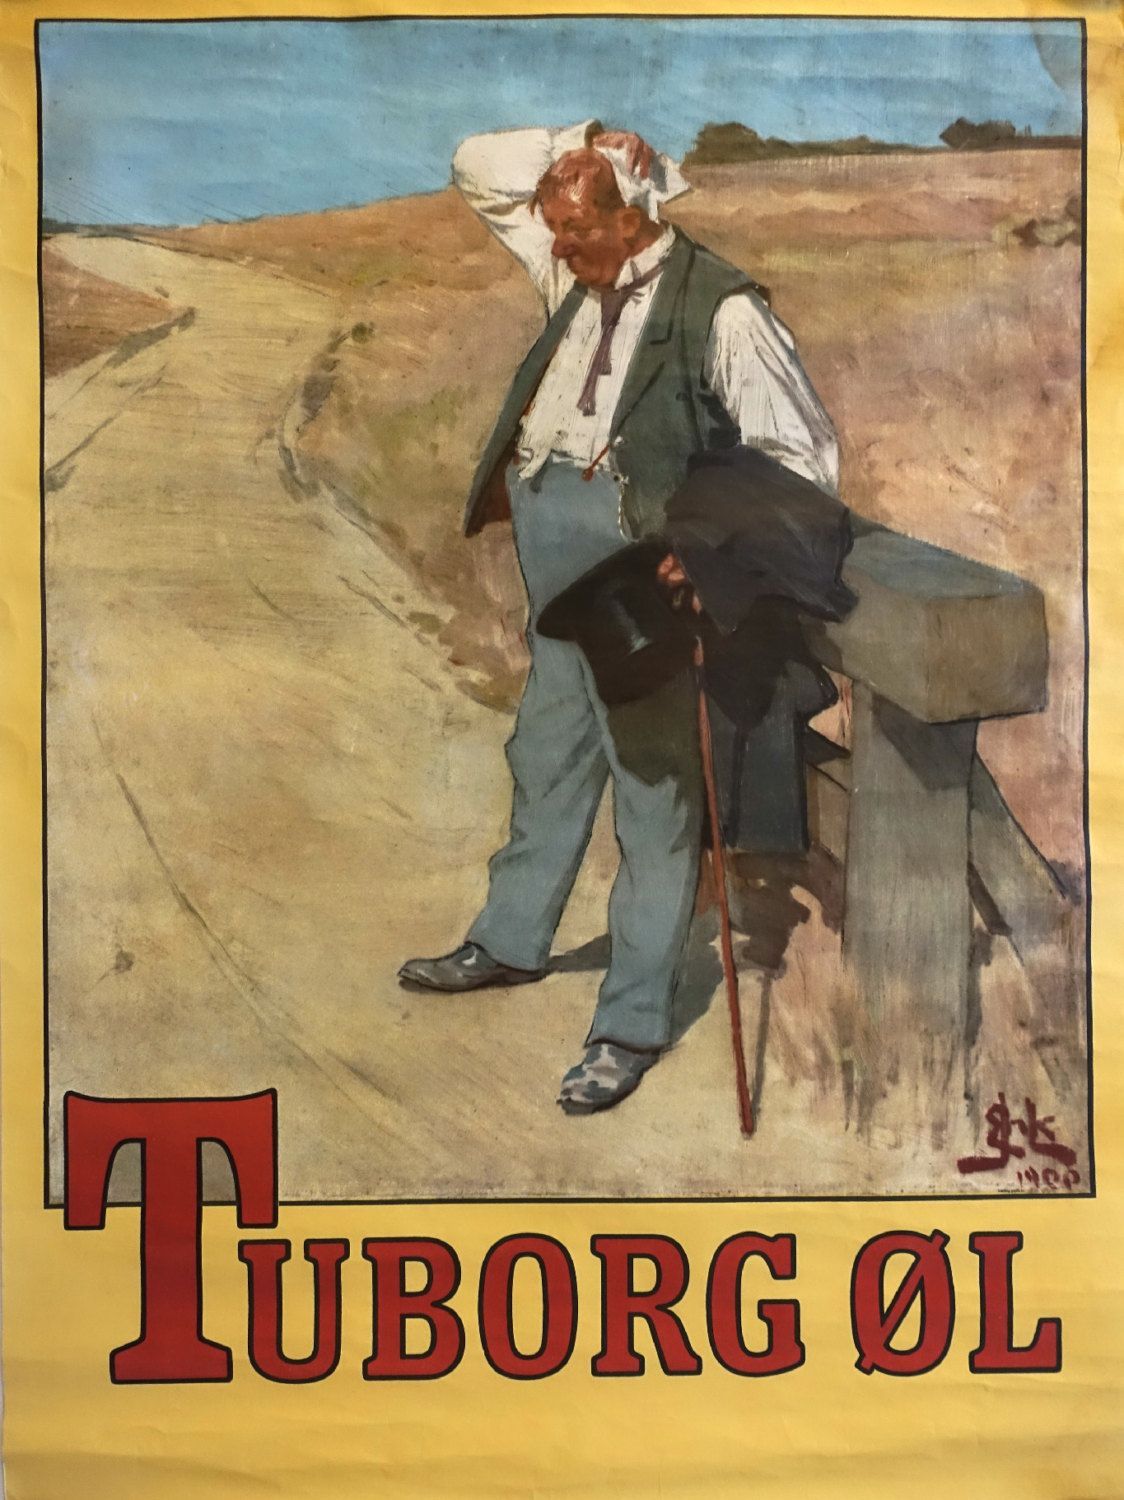 1970s Tuborg Beer Commercial The Thirsty Man By Outofcopenhagen Vintage Posters Beer Commercials Retro Advertising